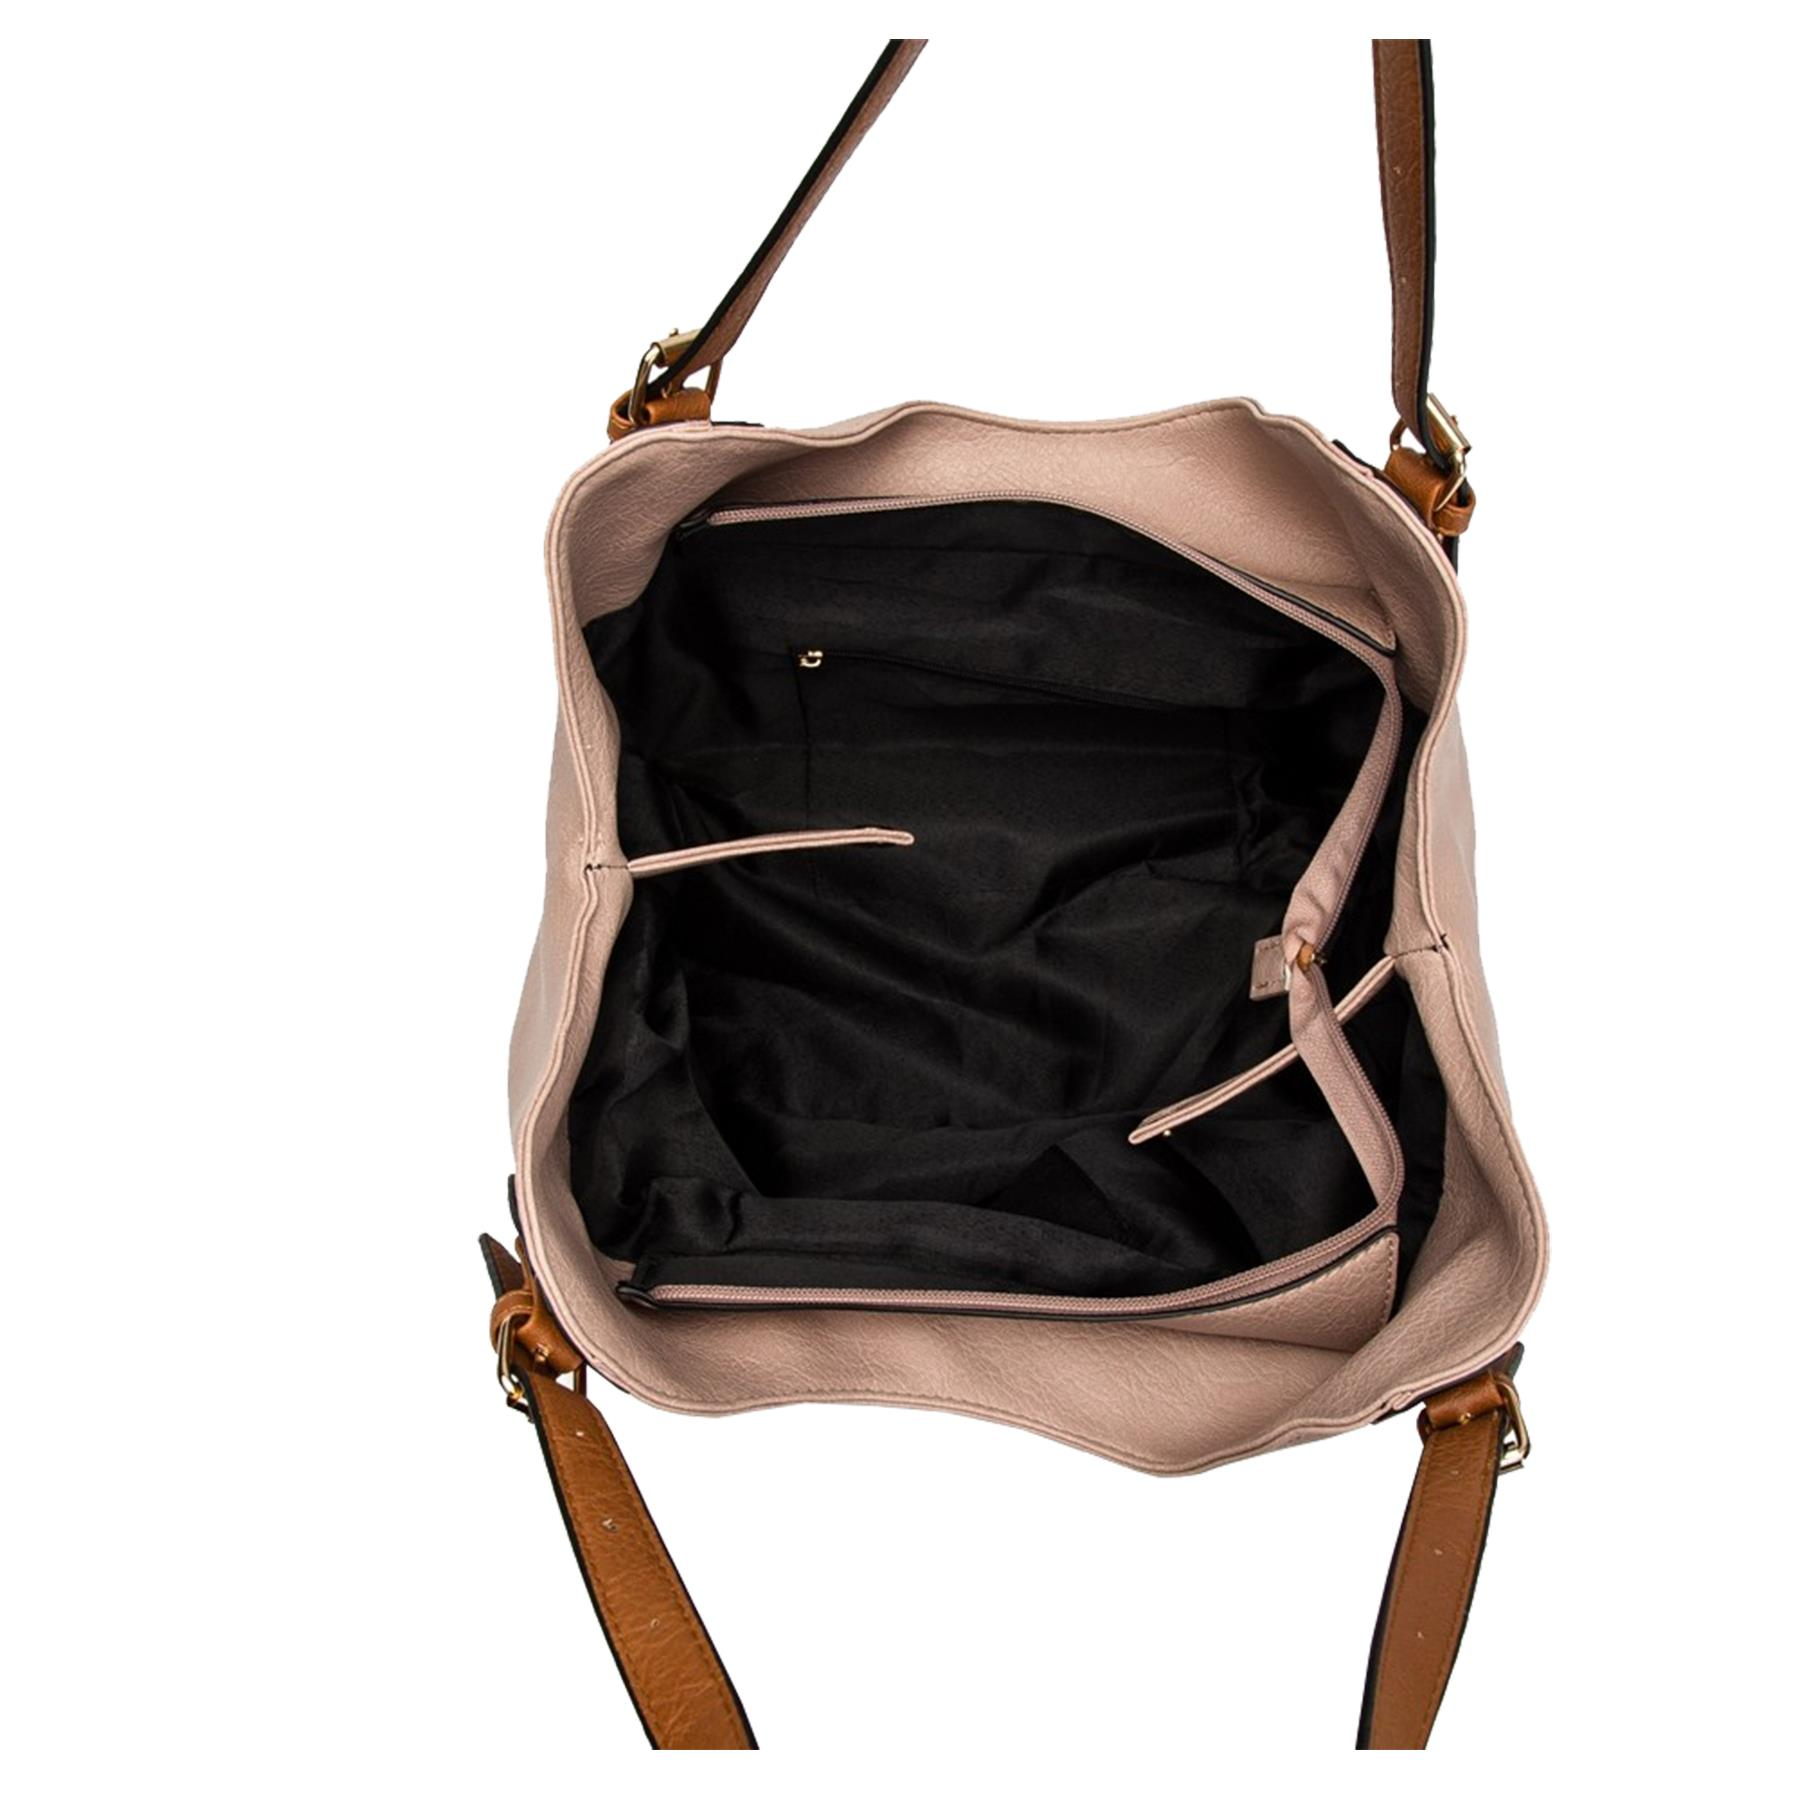 New-Ladies-Buckled-Straps-Two-Toned-Faux-Leather-Slouchy-Shoulder-Bag thumbnail 13